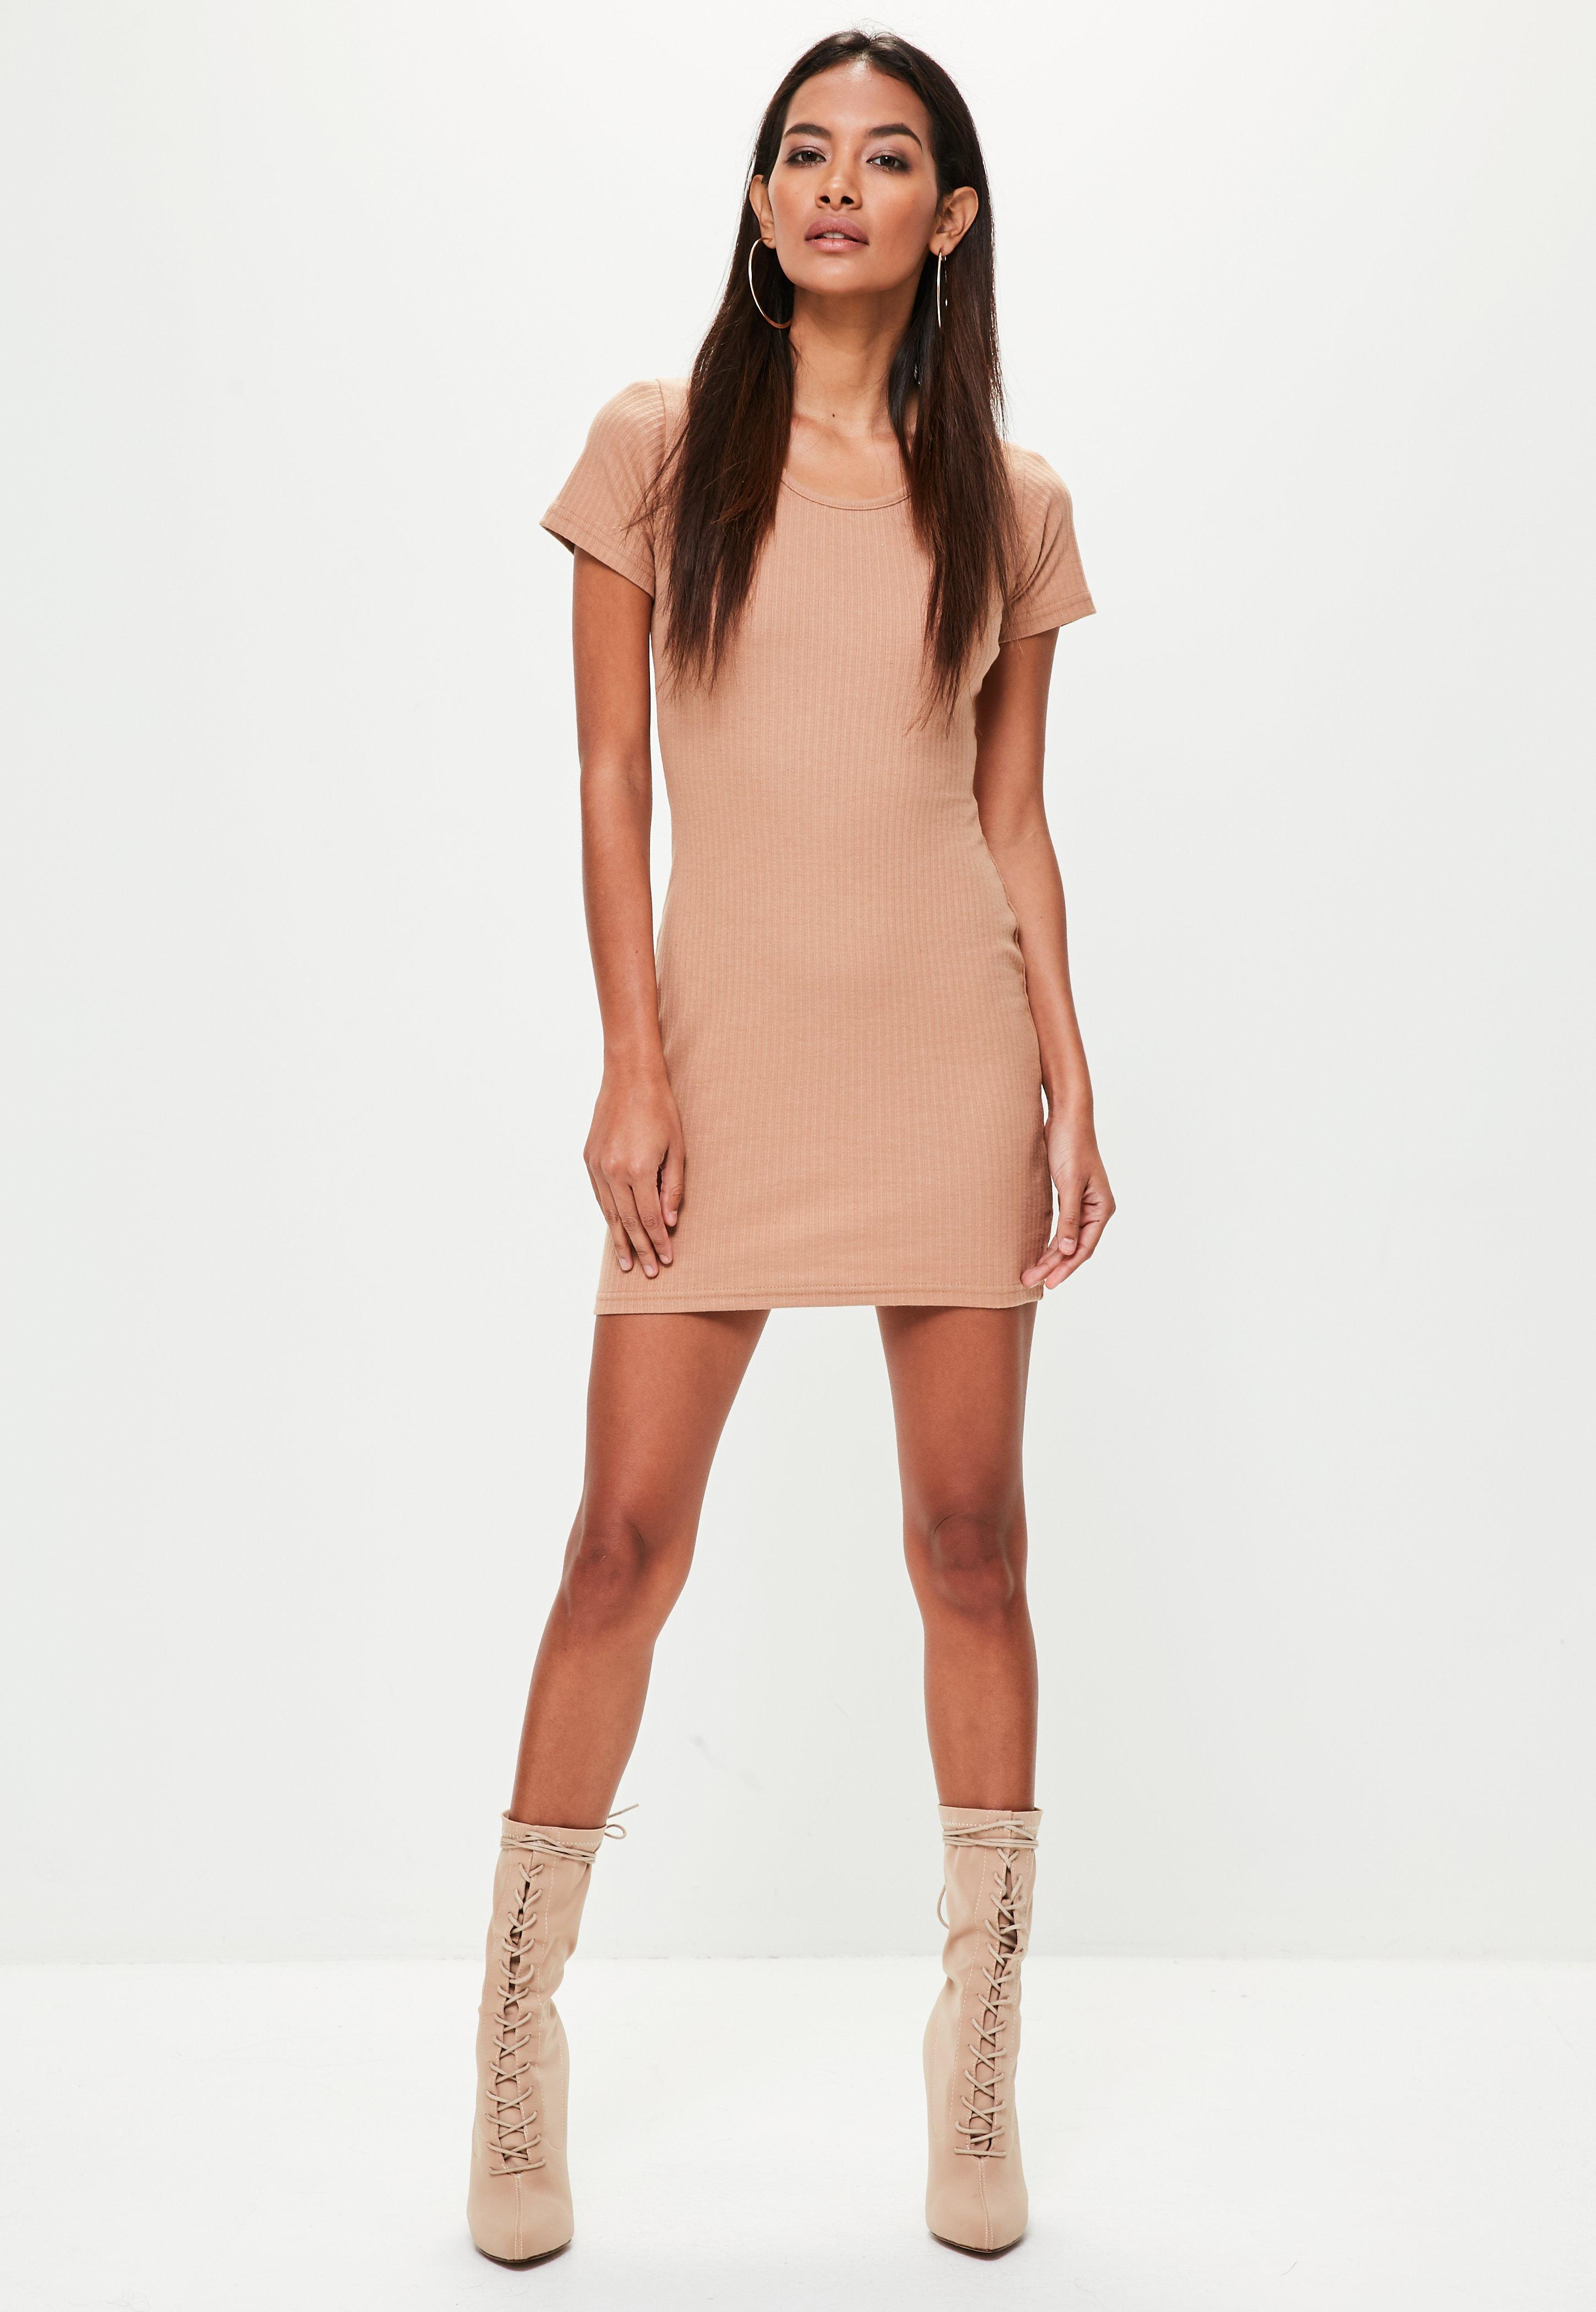 Missguided Tan Short Sleeve Ribbed Mini Dress Buy Cheap Outlet Clearance Sneakernews tym45jVC